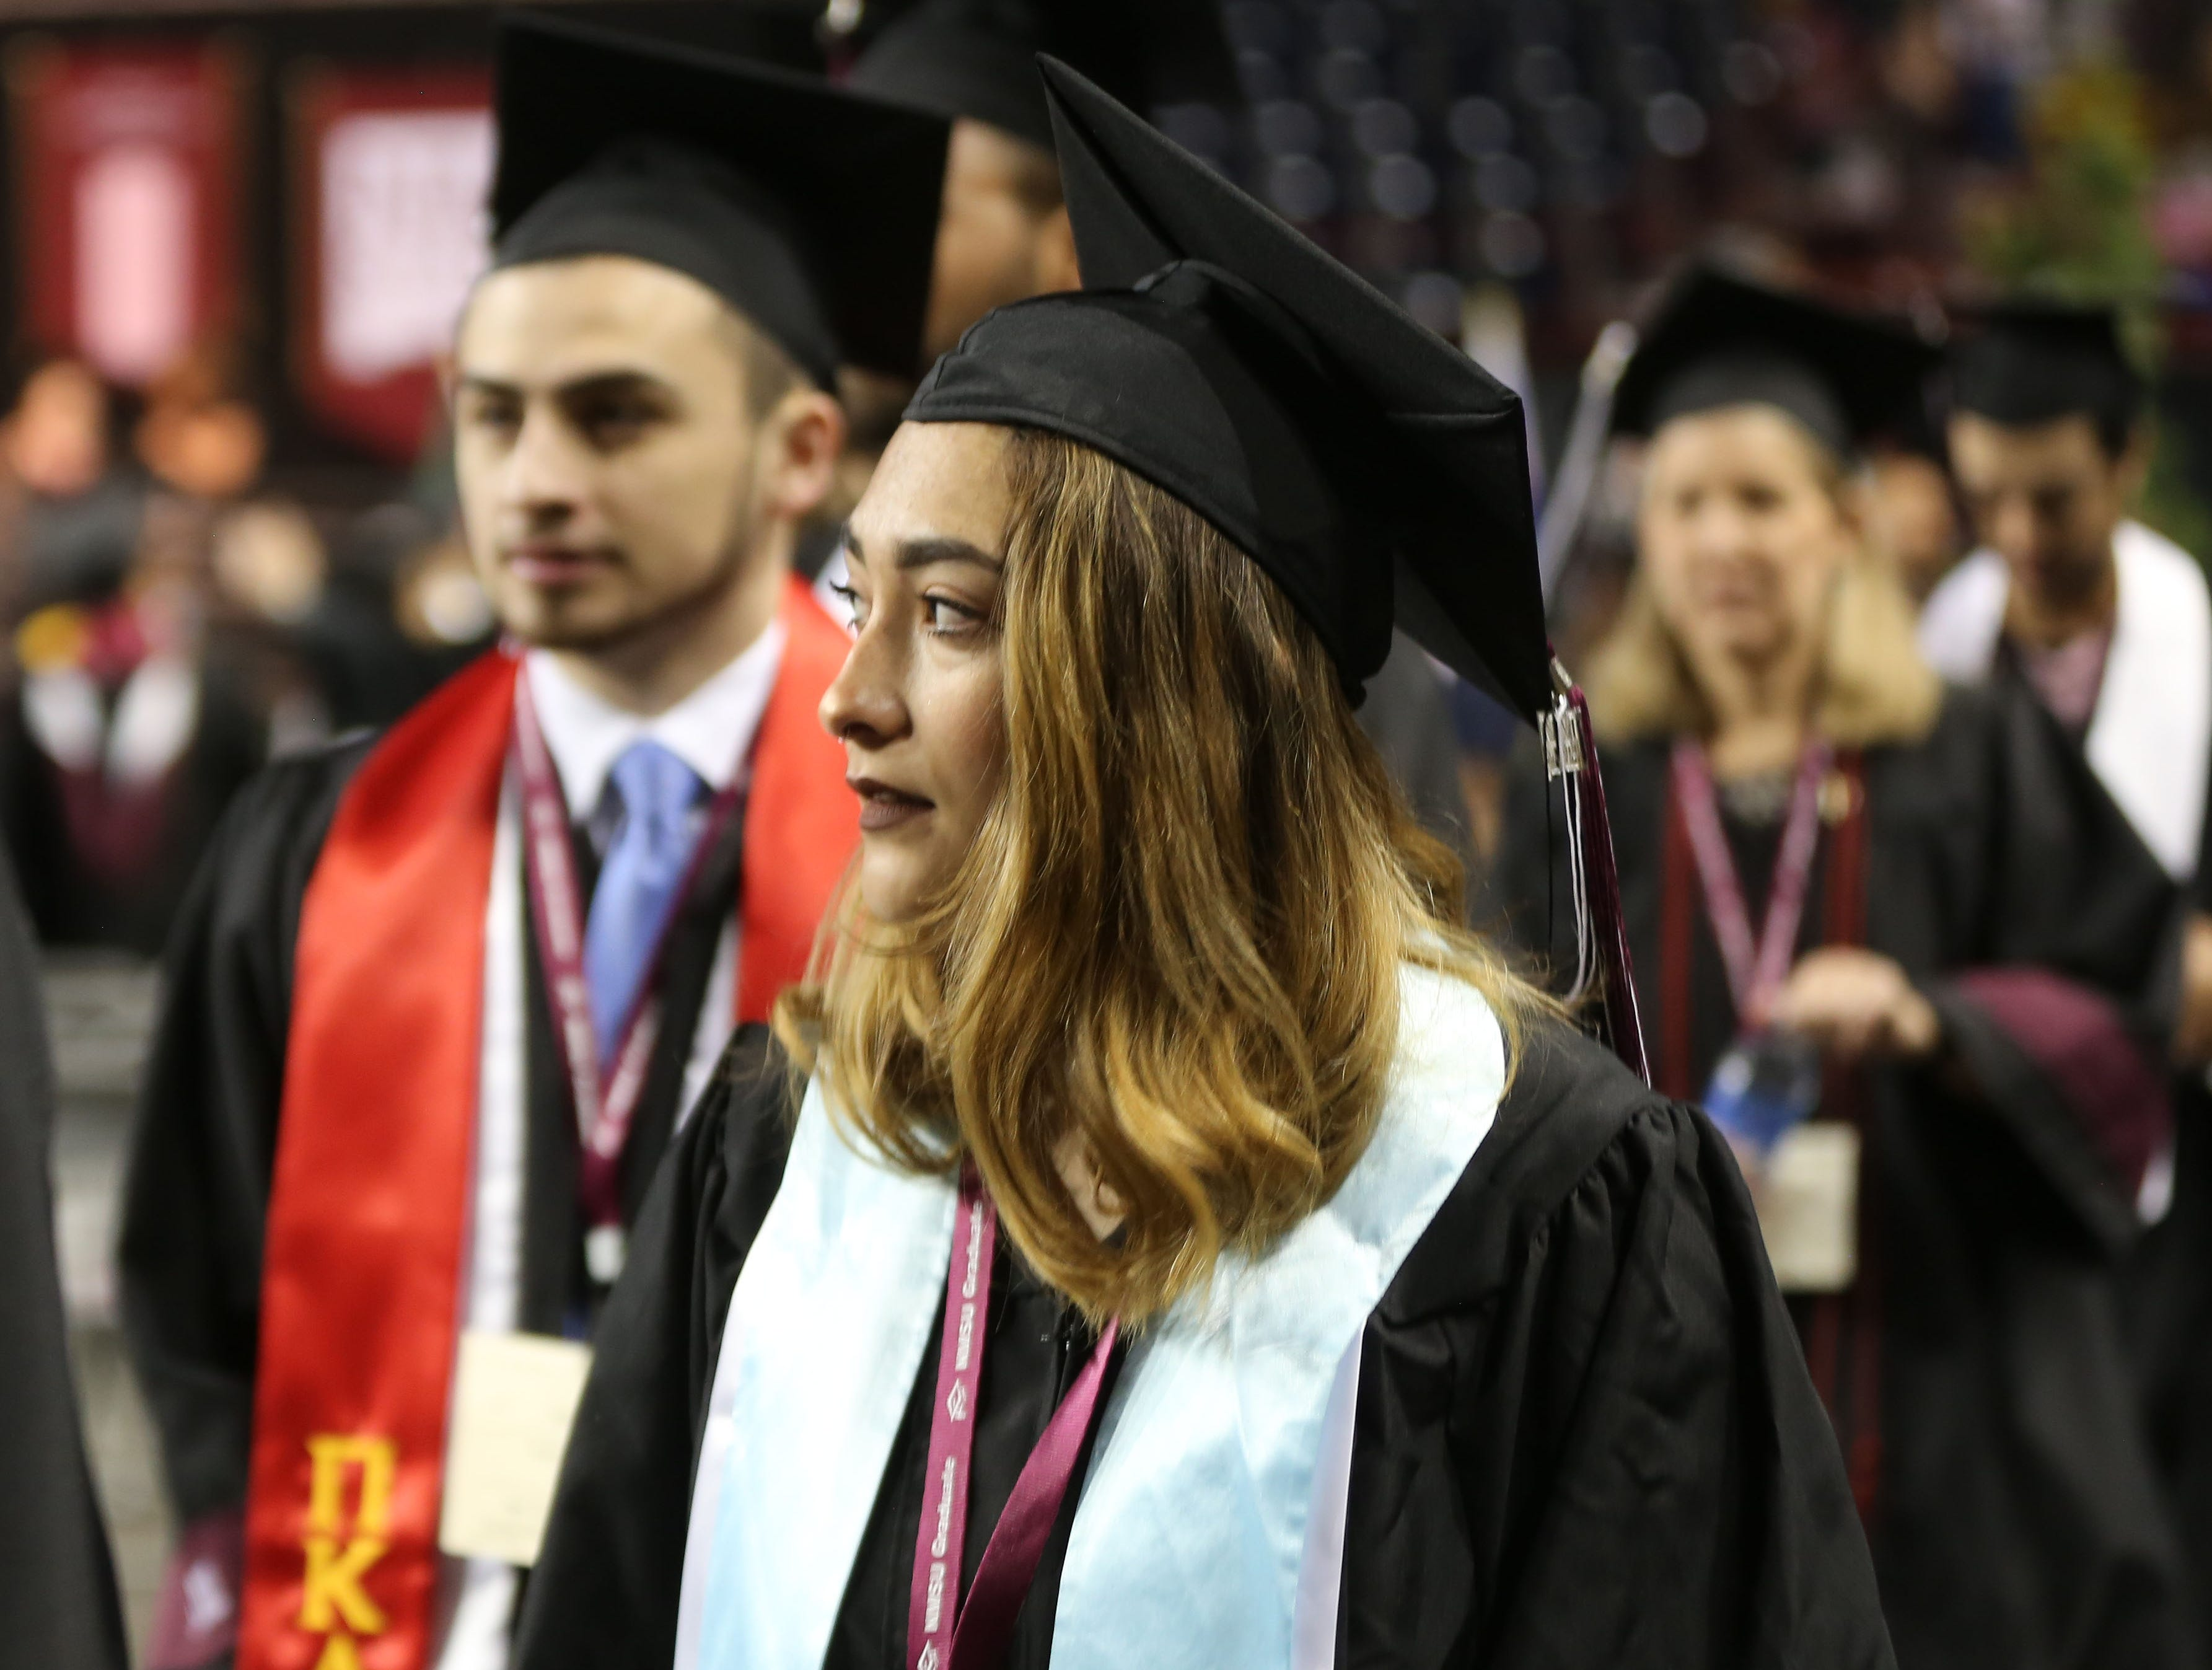 A student waits to receive her degree from New Mexico State University, at commencement, Saturday May 11, 2019.